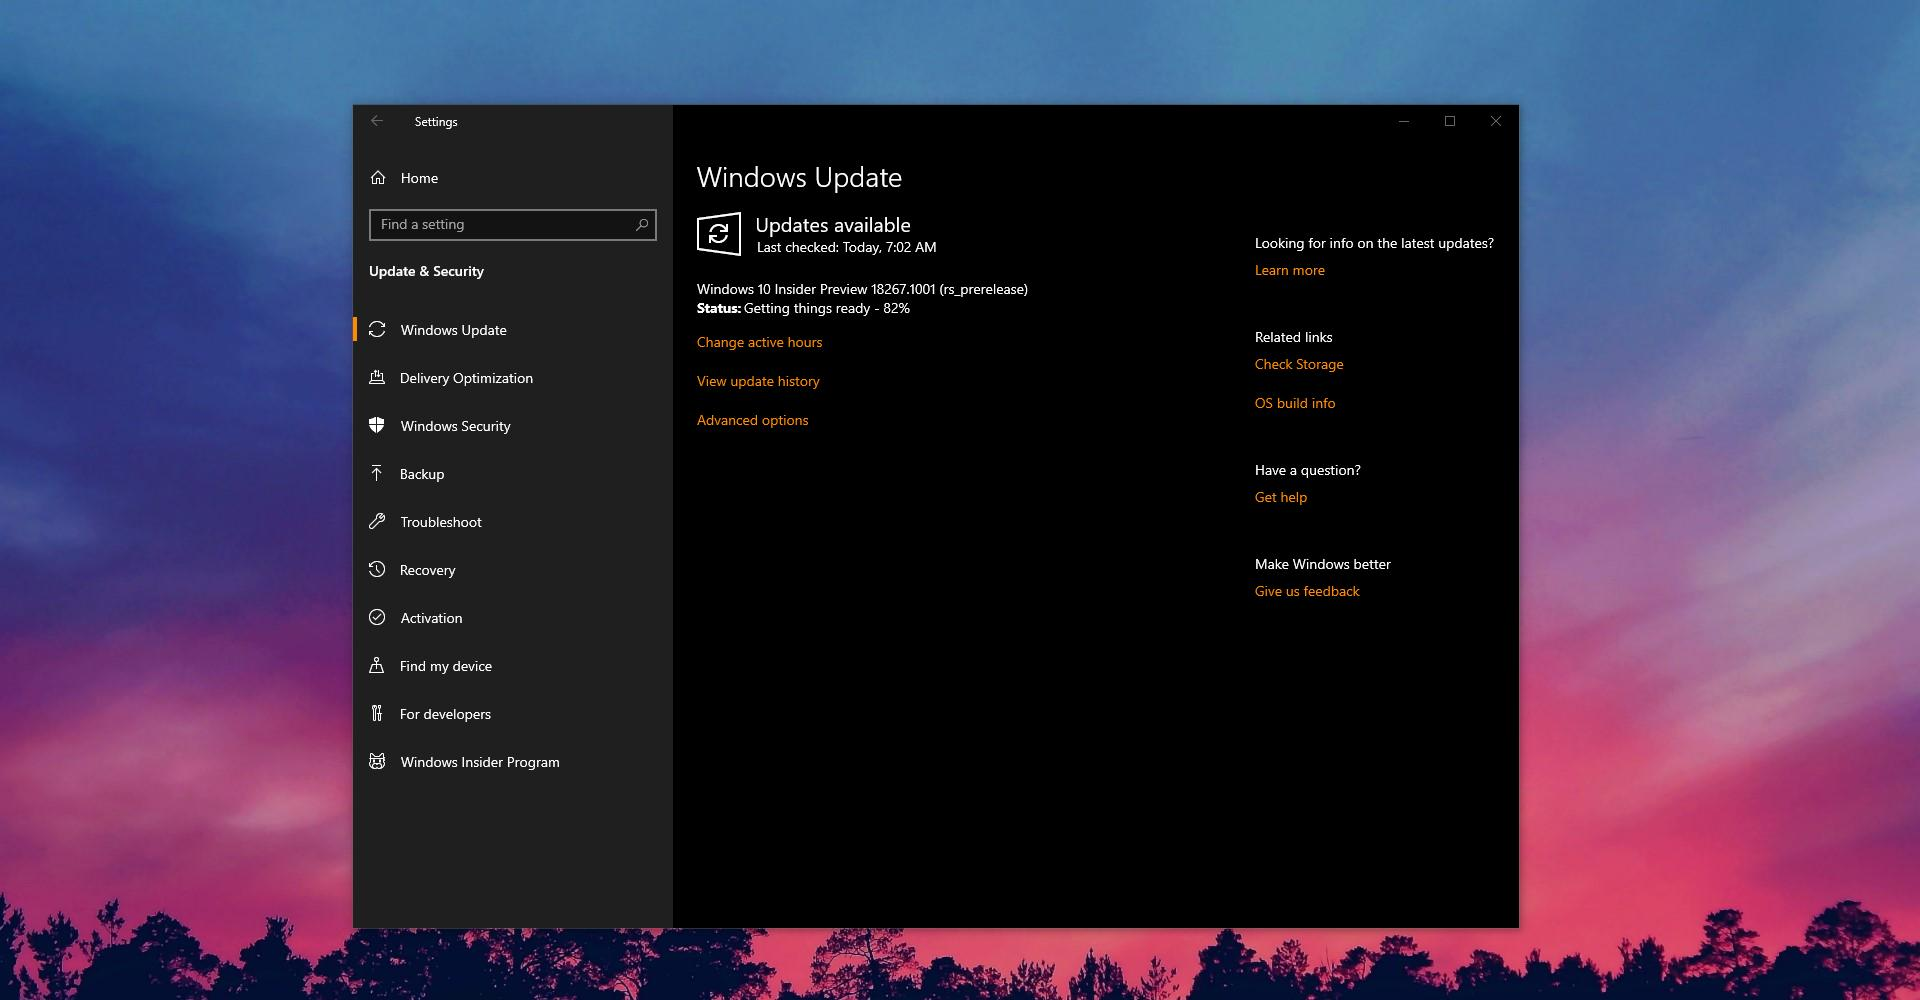 Windows 10 Build 18267 (19H1) Now Available for Download